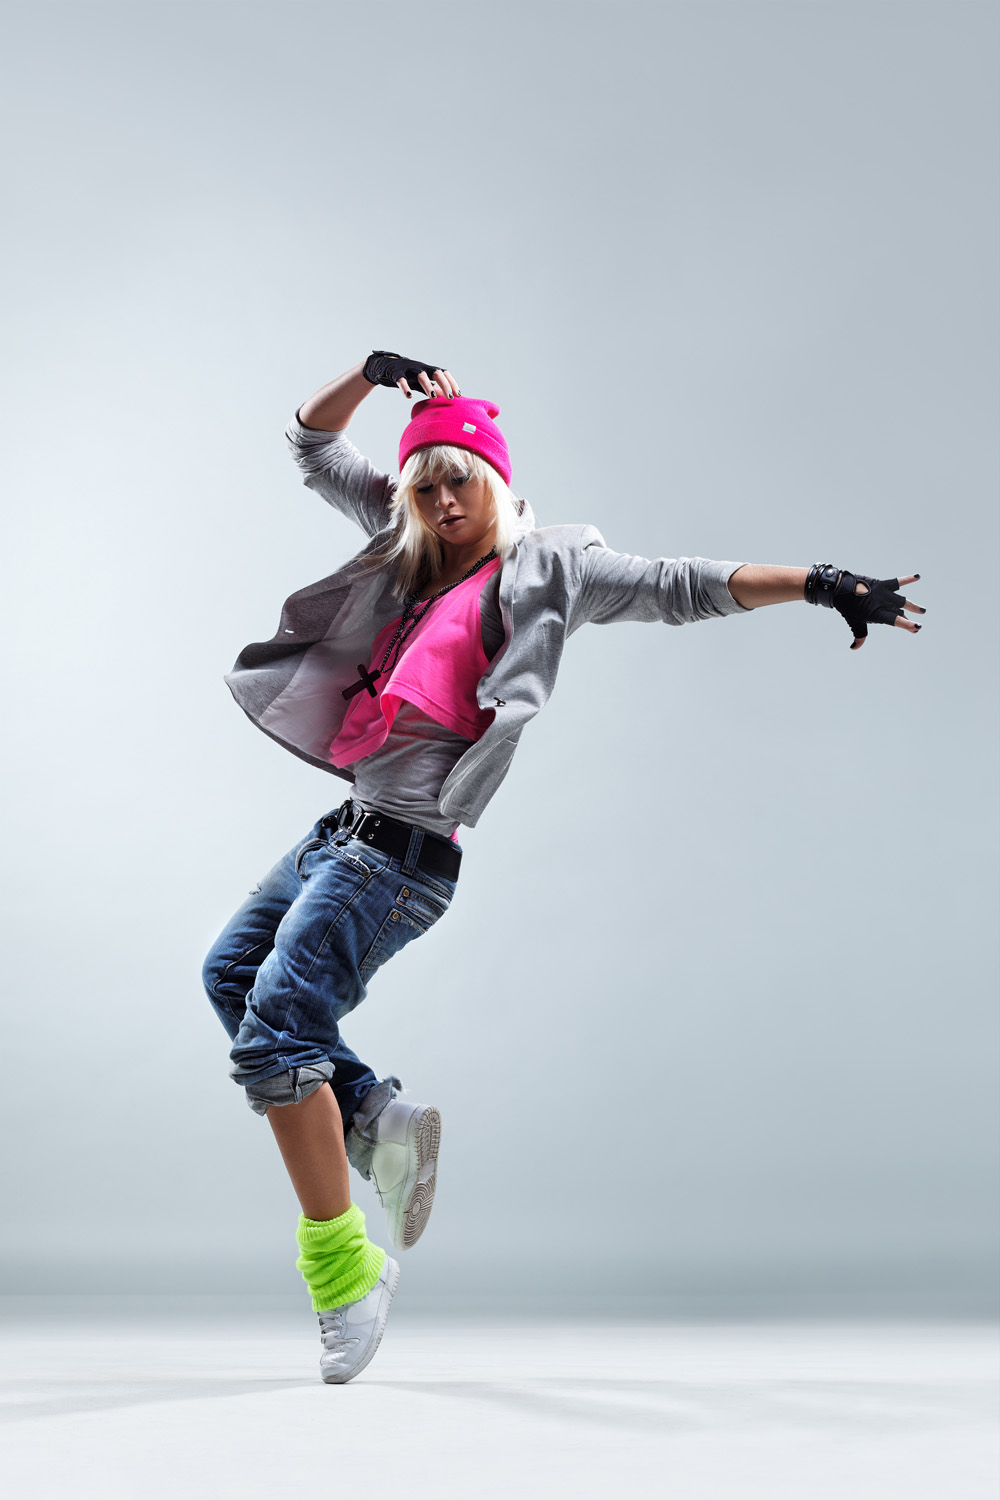 Medium Hairstyles 2011 Hip Hop Dance Wallpapers 1000x1500